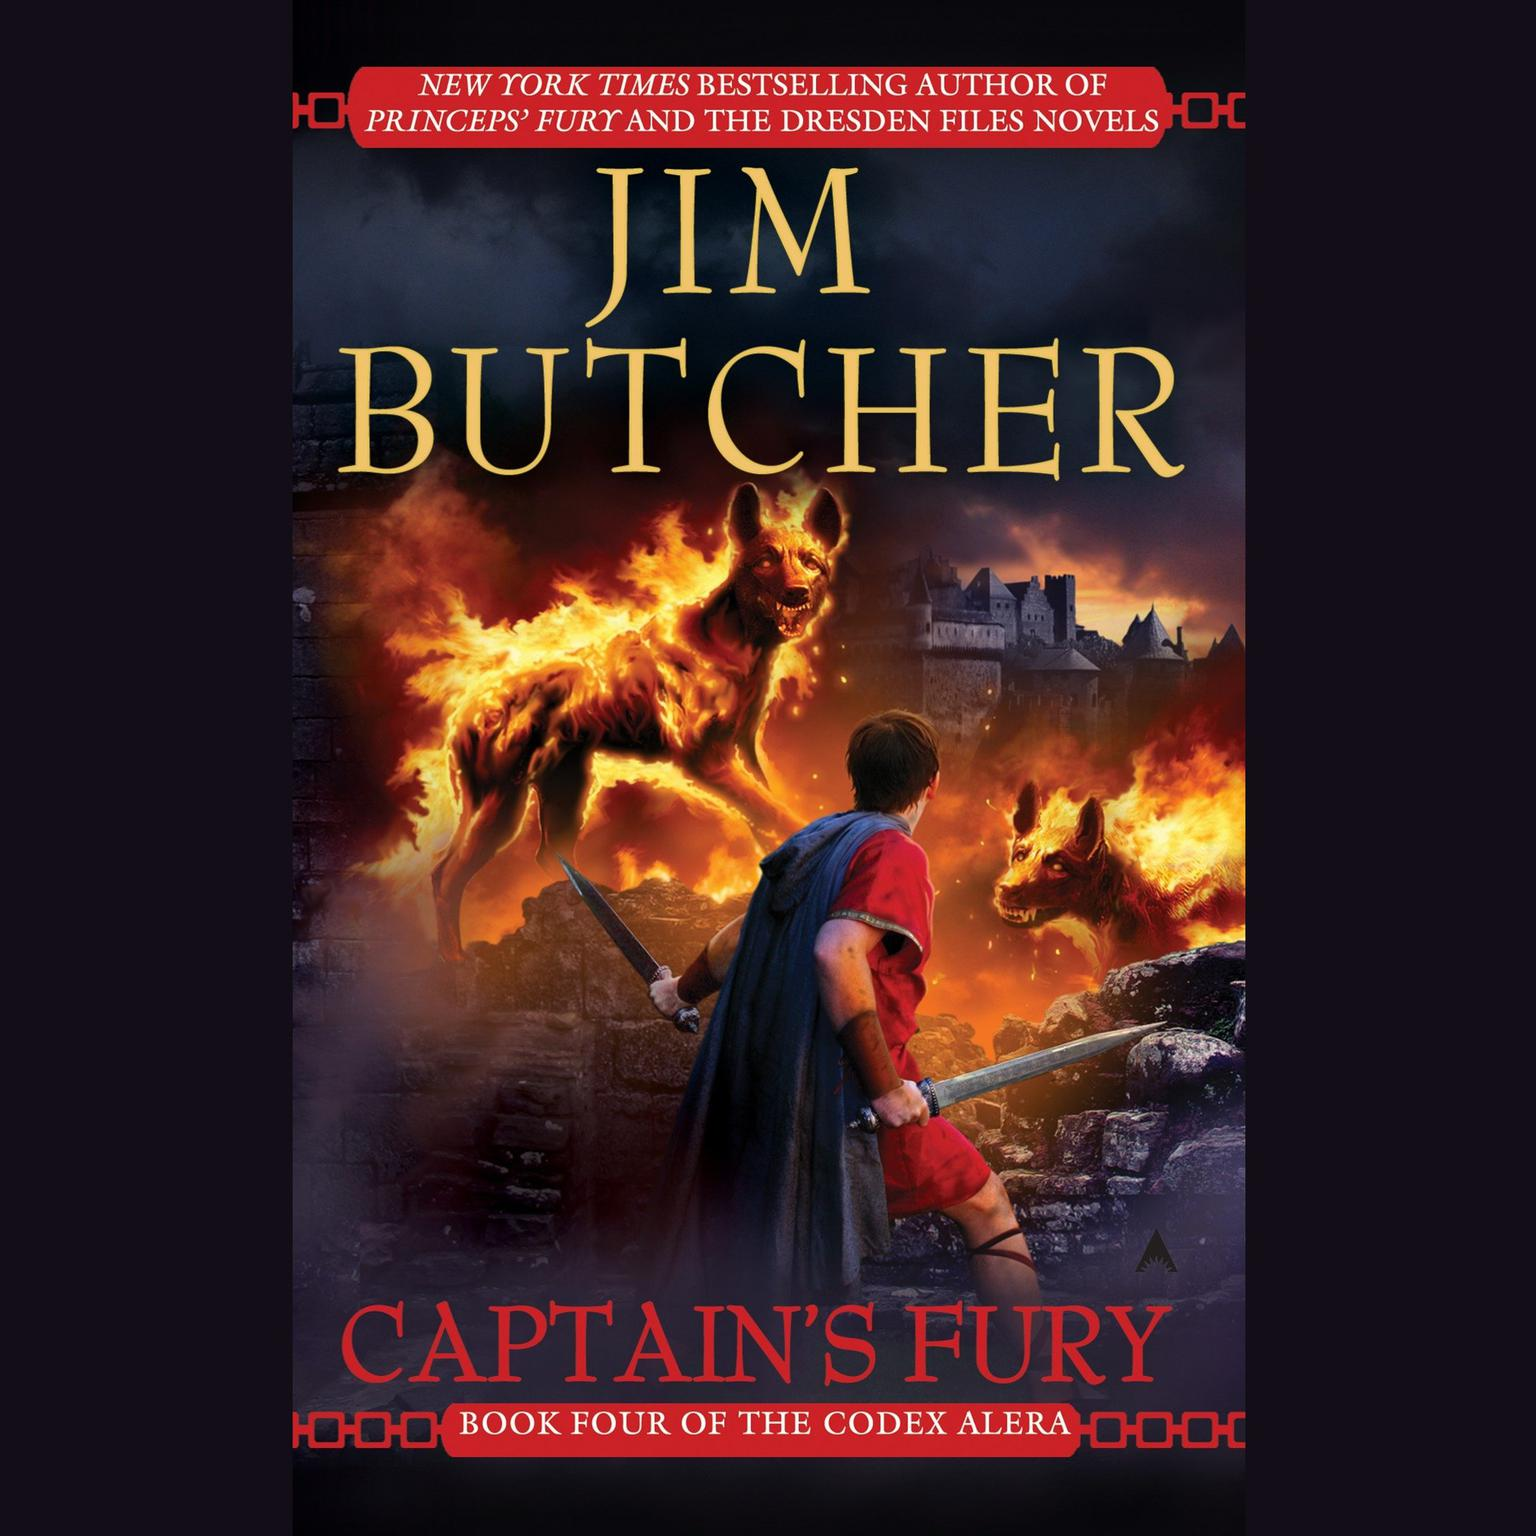 Printable Captain's Fury: Book Four of the Codex Alera Audiobook Cover Art